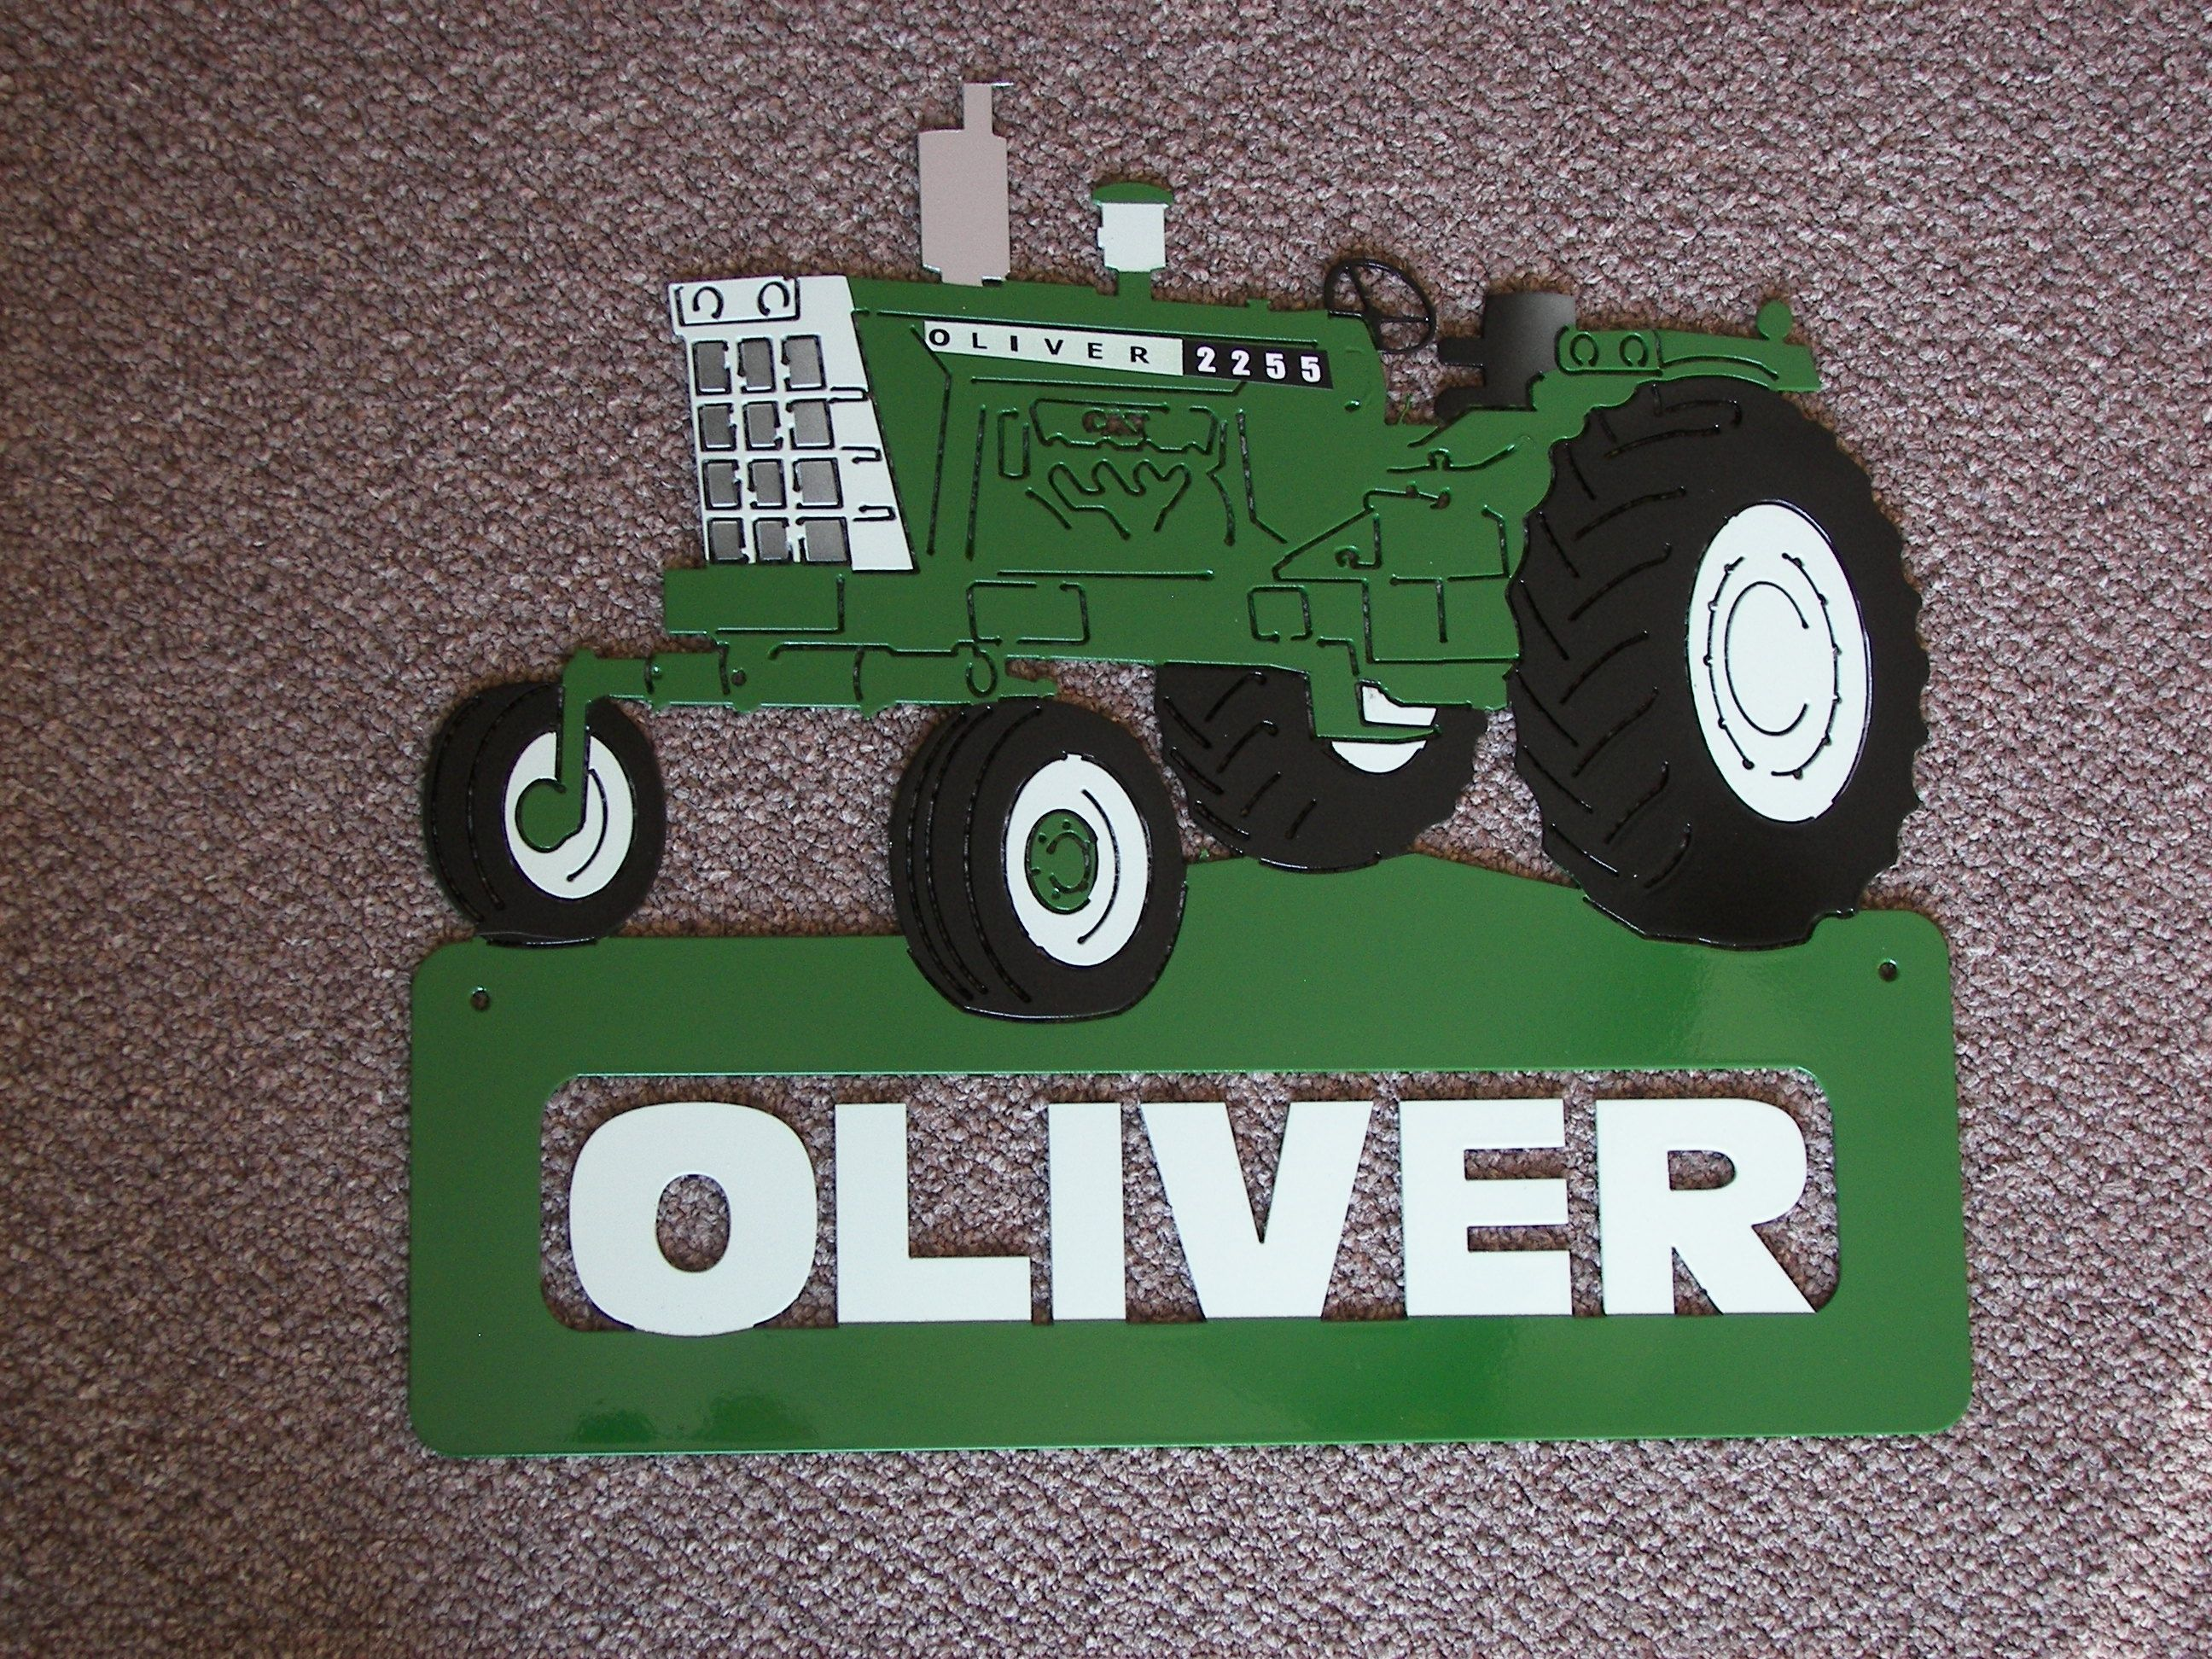 Pulling Tractors For Sale >> Oliver 2255 White 2-180 V8 Puller Tractor Caterpillar 3208 ...